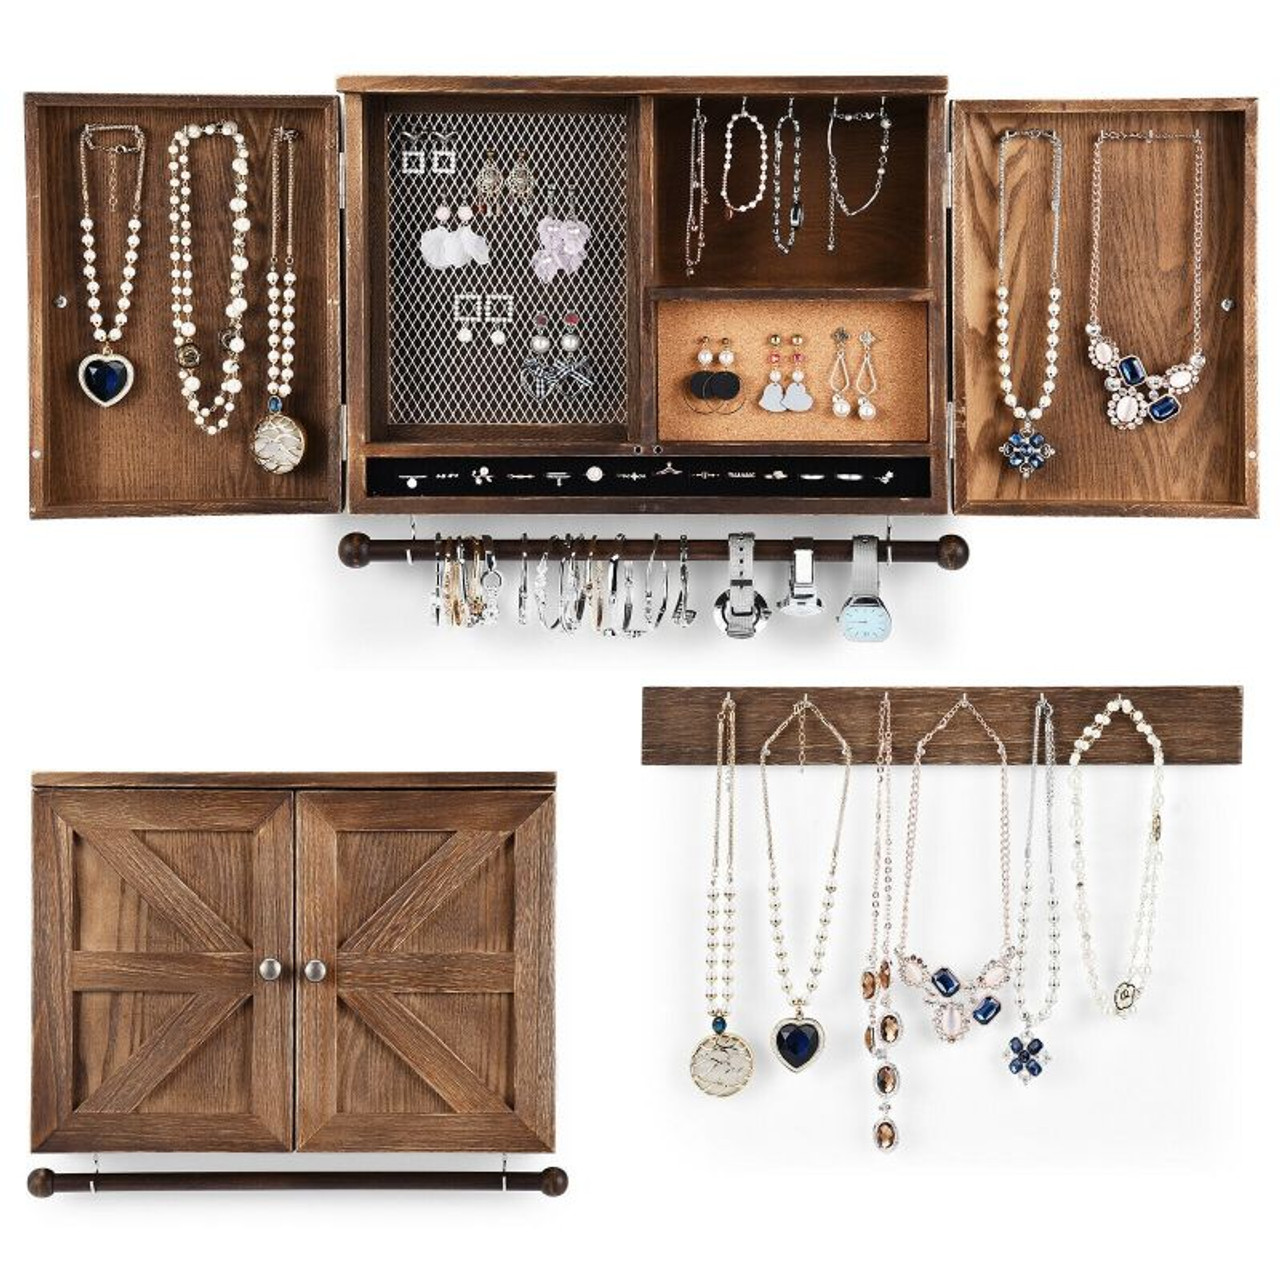 Rustic Wall Mounted Jewelry Cabinet with Barn Door Decor